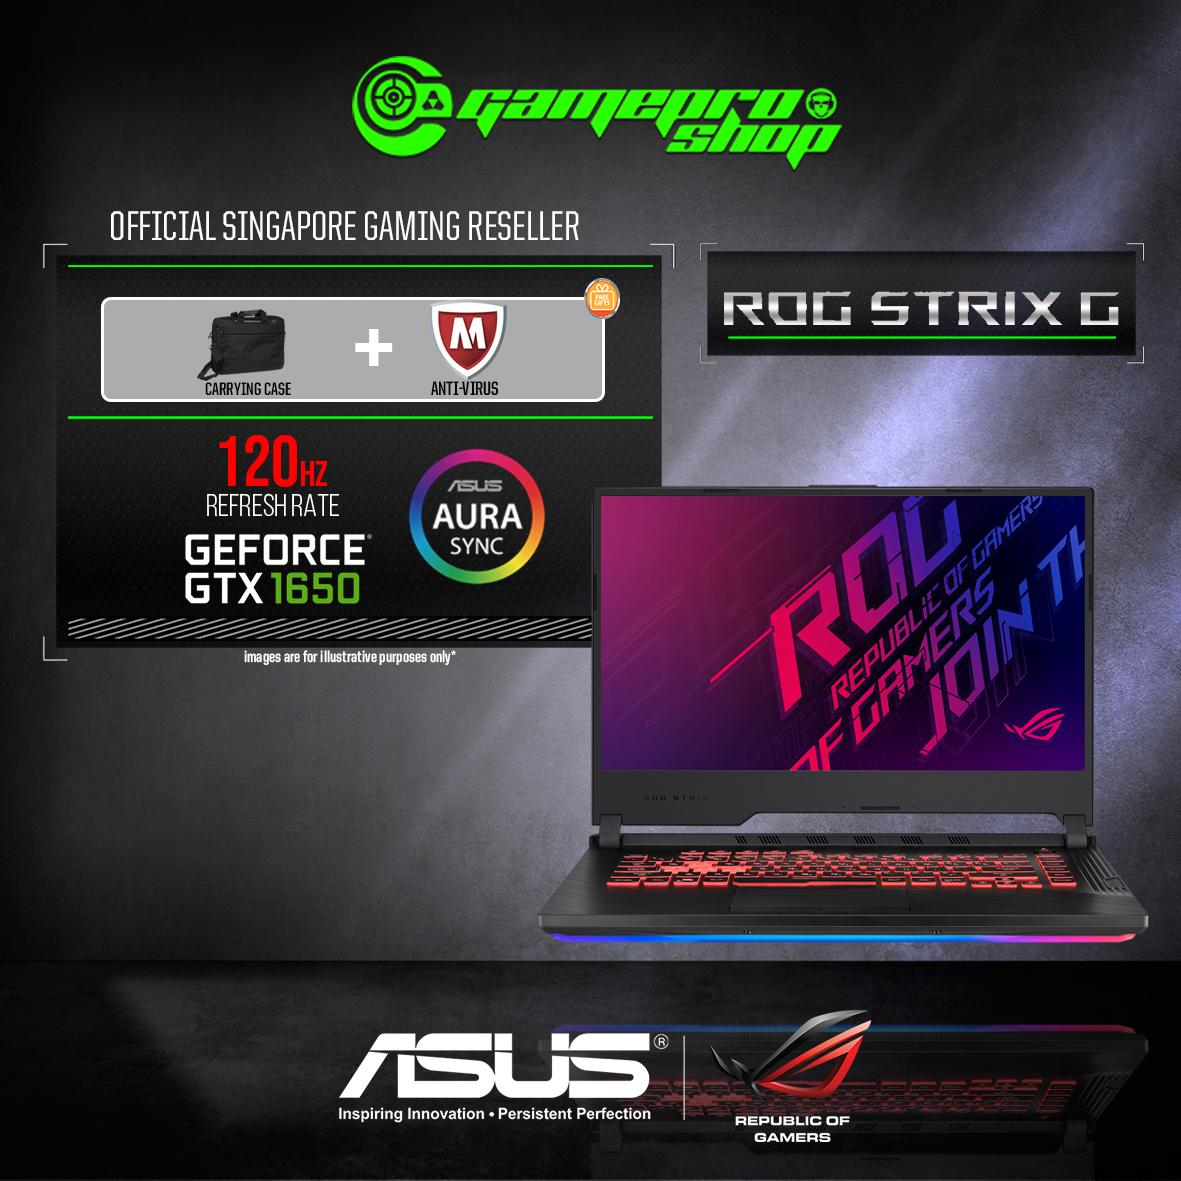 9th Gen ASUS ROG Strix G G531GT GTX1650 (I7-9750H / 16GB DDR4 / 512GB SSD / W10) 15.6 FHD with 120HZ GAMING LAPTOP *COMEX PROMO*